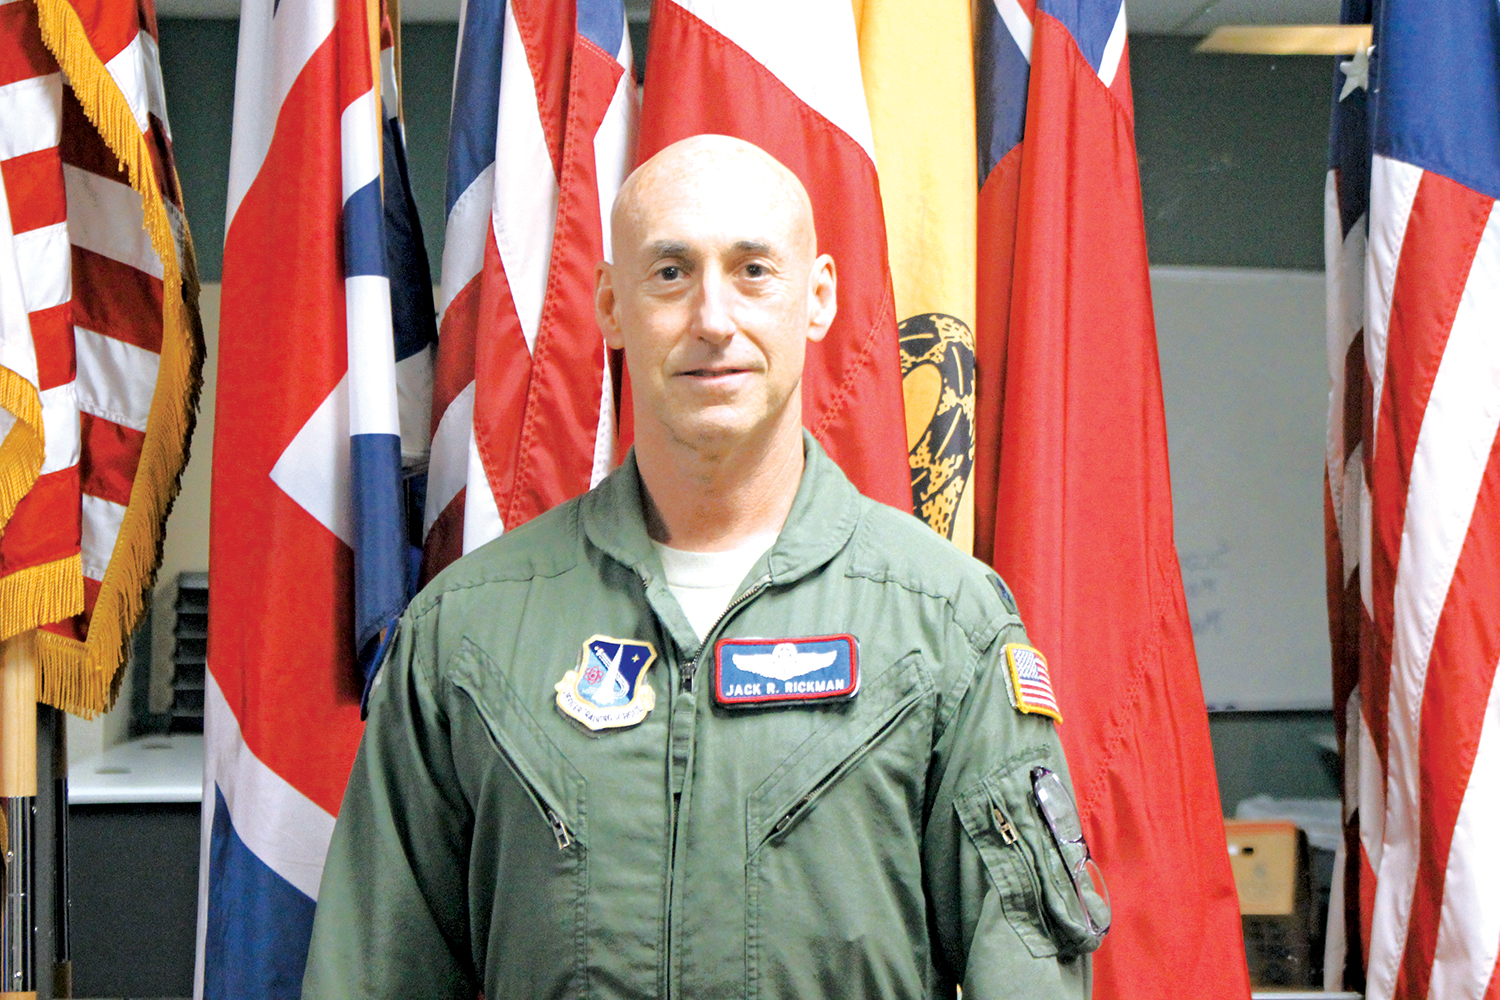 Colonel Jack R. Rickman, a command pilot with 3200 total  ying hours uses his experiences to help the AFJROTC program. Col. Rickman recounts his past missions, like having to land a C-5, a large military transport aircraft, with the nose gear retracted and a nearly empty fuel tank with 50 passengers on board.